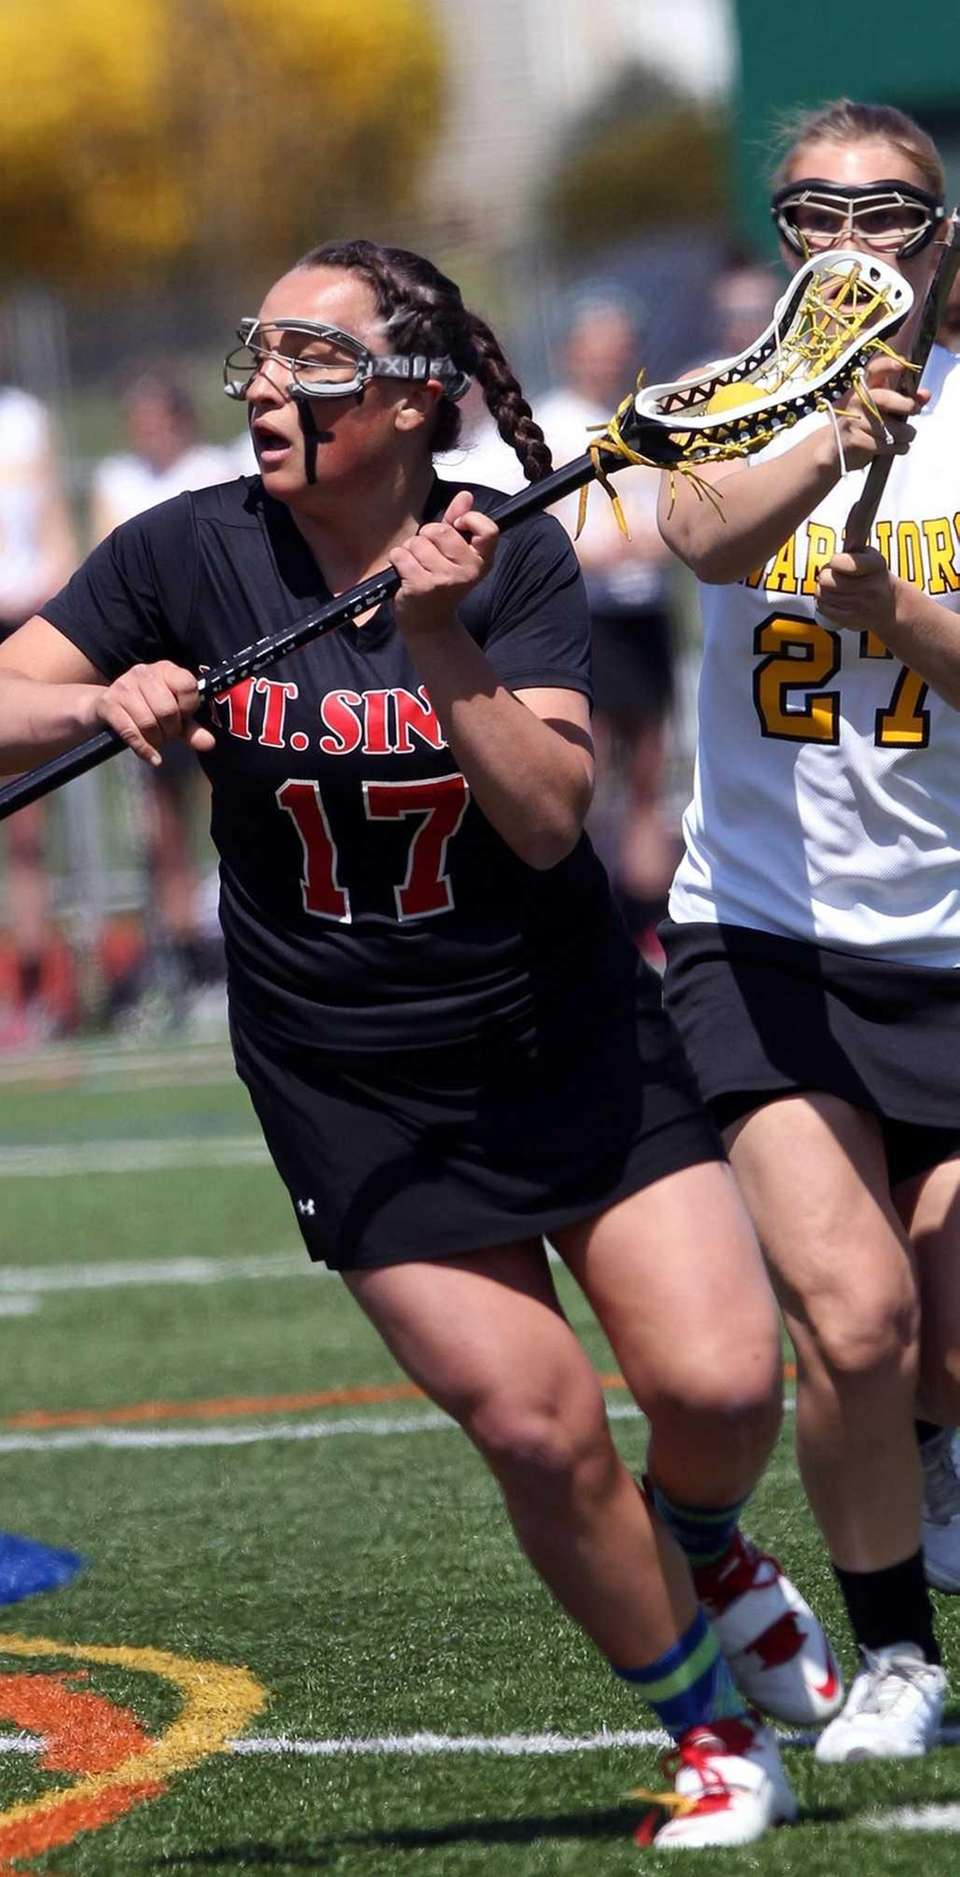 Mt. Sinai's Kasey Mitchell breaks downfield against Wantagh.